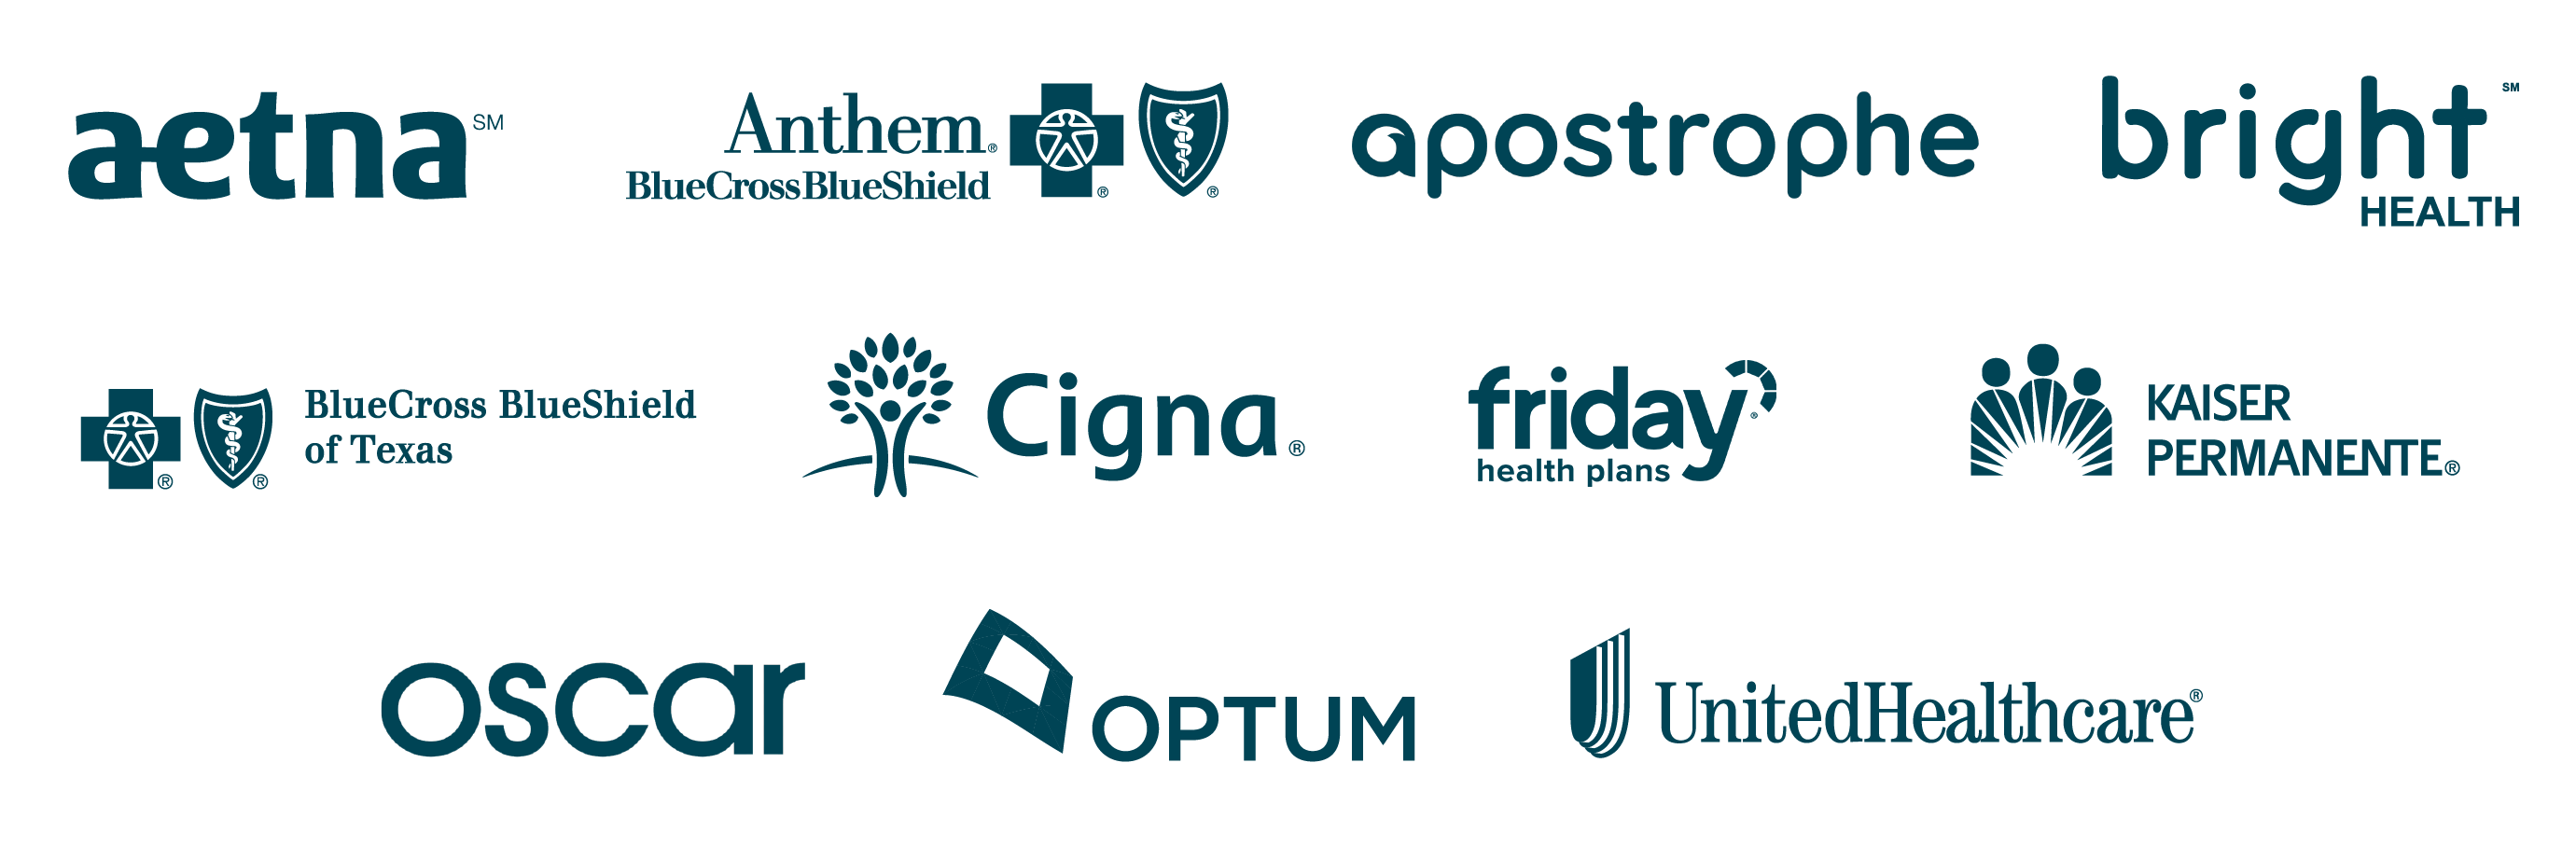 Aetna, Anthem, BlueCross BlueShield, Cigna, and United Healthcare insurance logos.